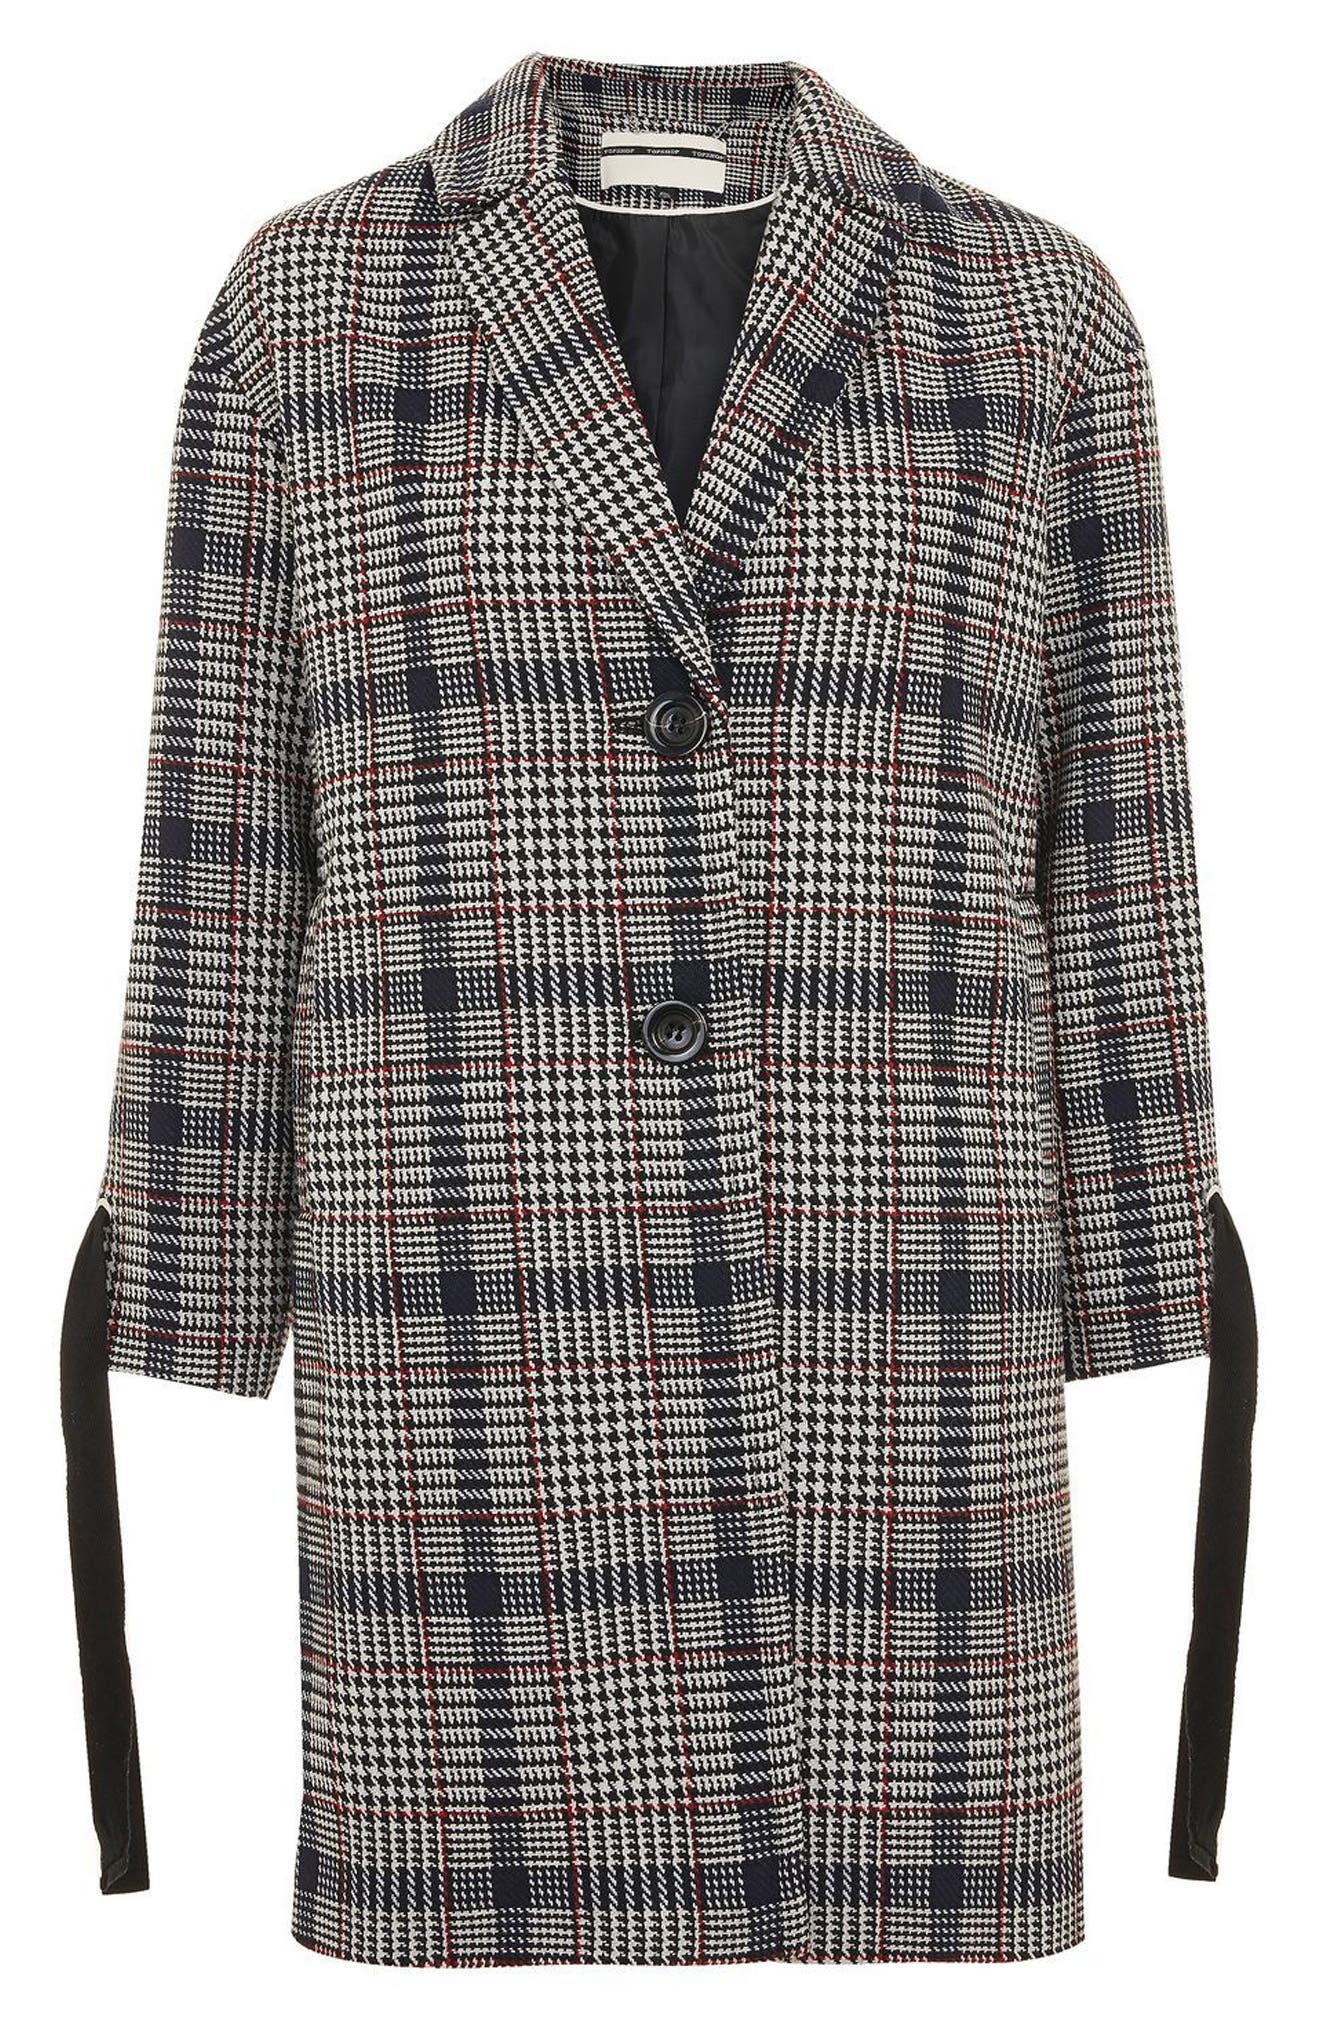 Lace-Up Sleeve Check Coat,                             Alternate thumbnail 4, color,                             Navy Blue Multi